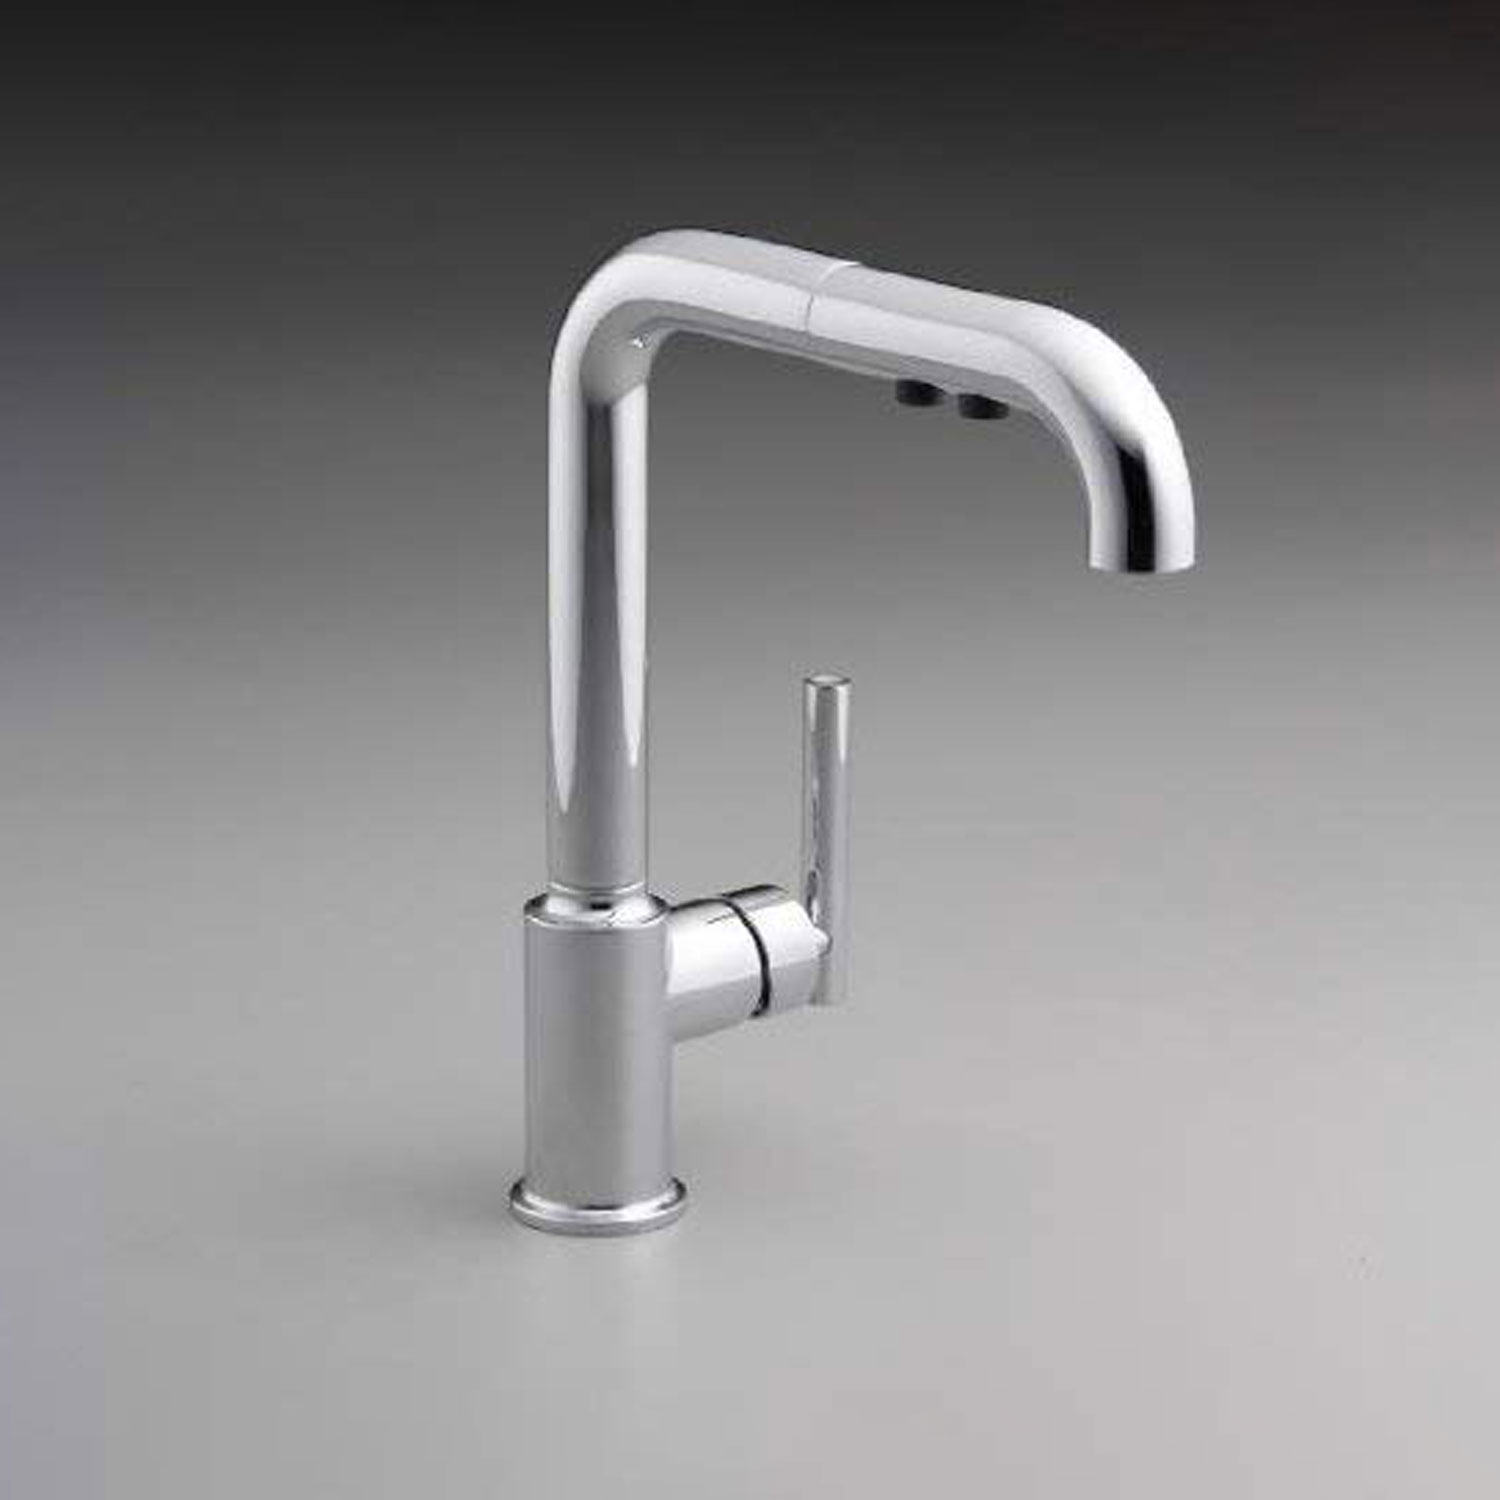 Kohler Purist Kitchen Mixer  Clearance Brassware